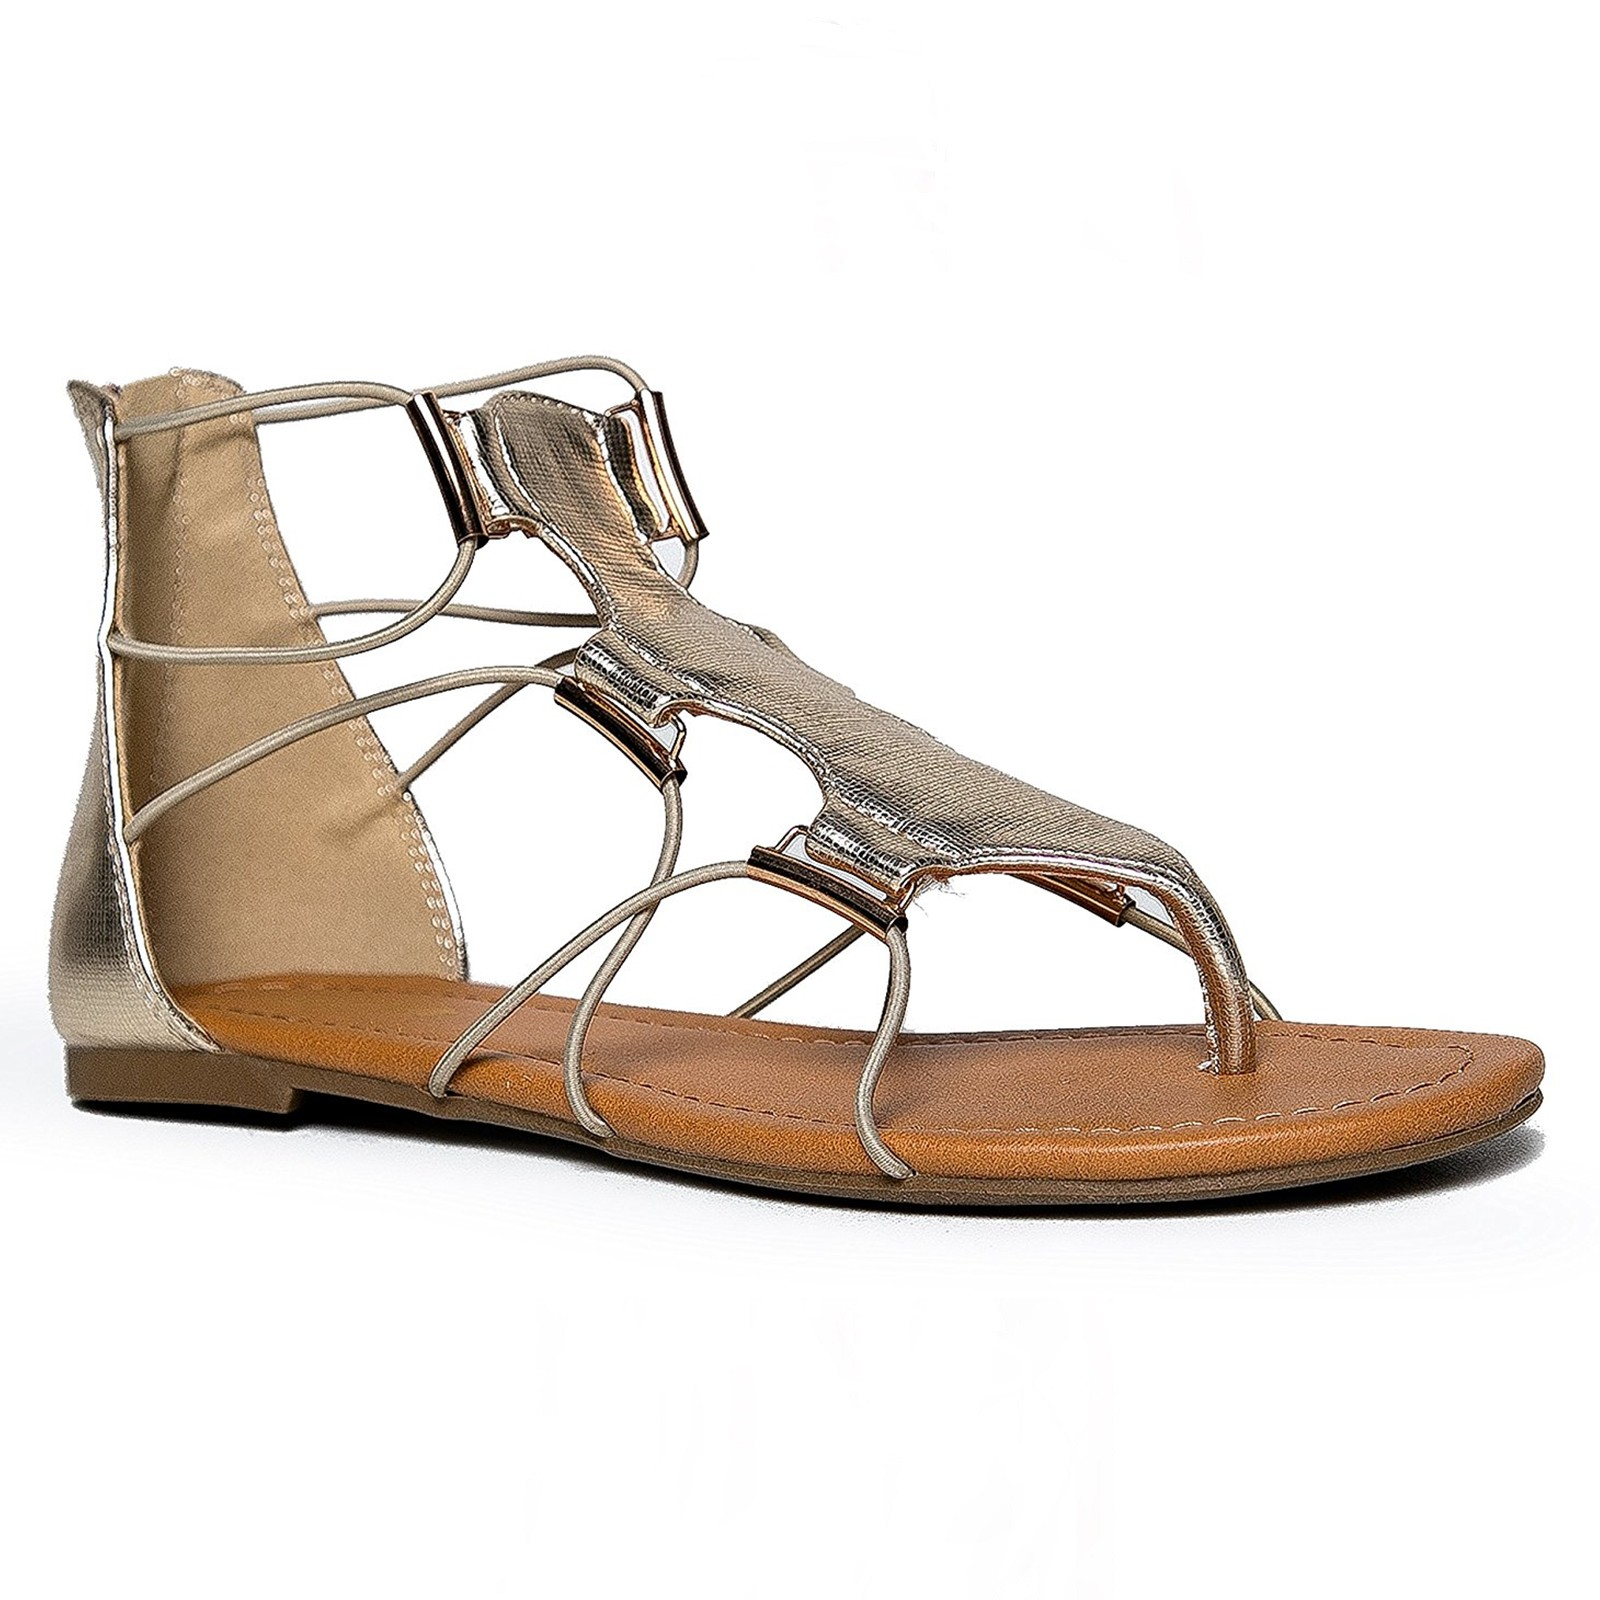 Soda-Impact-Women-039-s-Elastic-Strappy-Ankle-